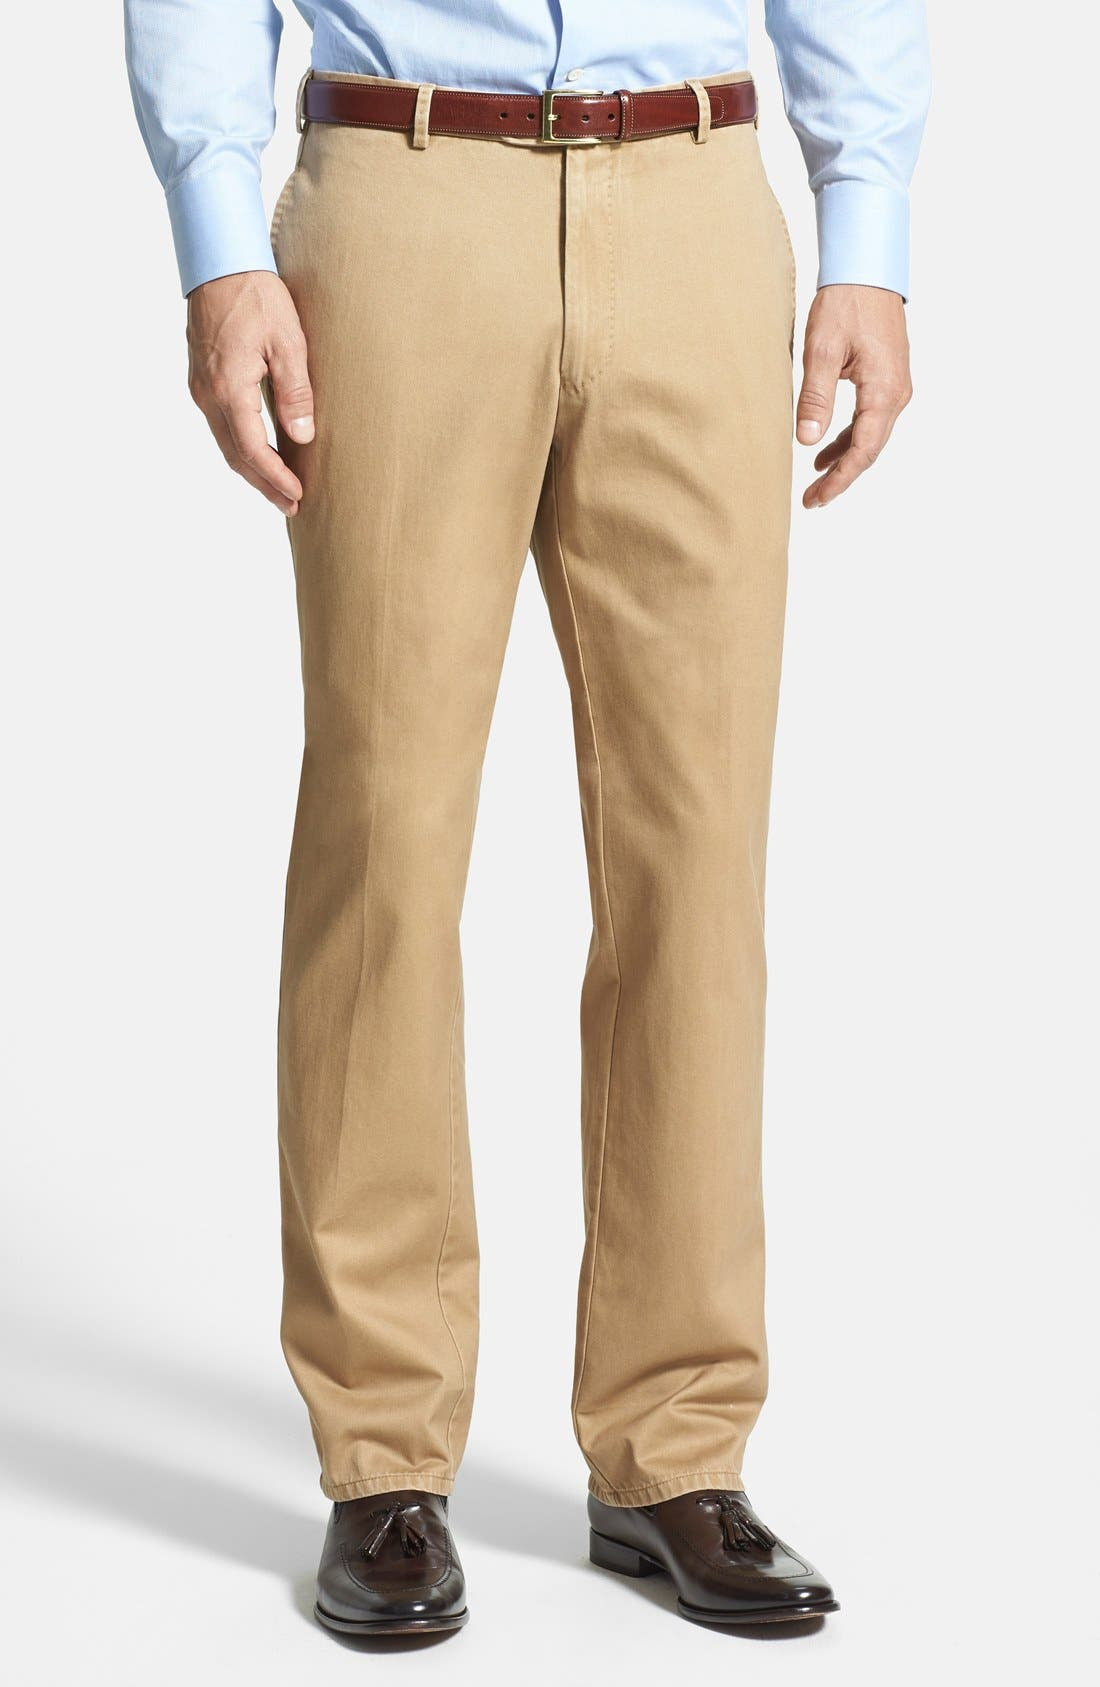 Alternate Image 1 Selected - Peter Millar Garment Washed Twill Pants